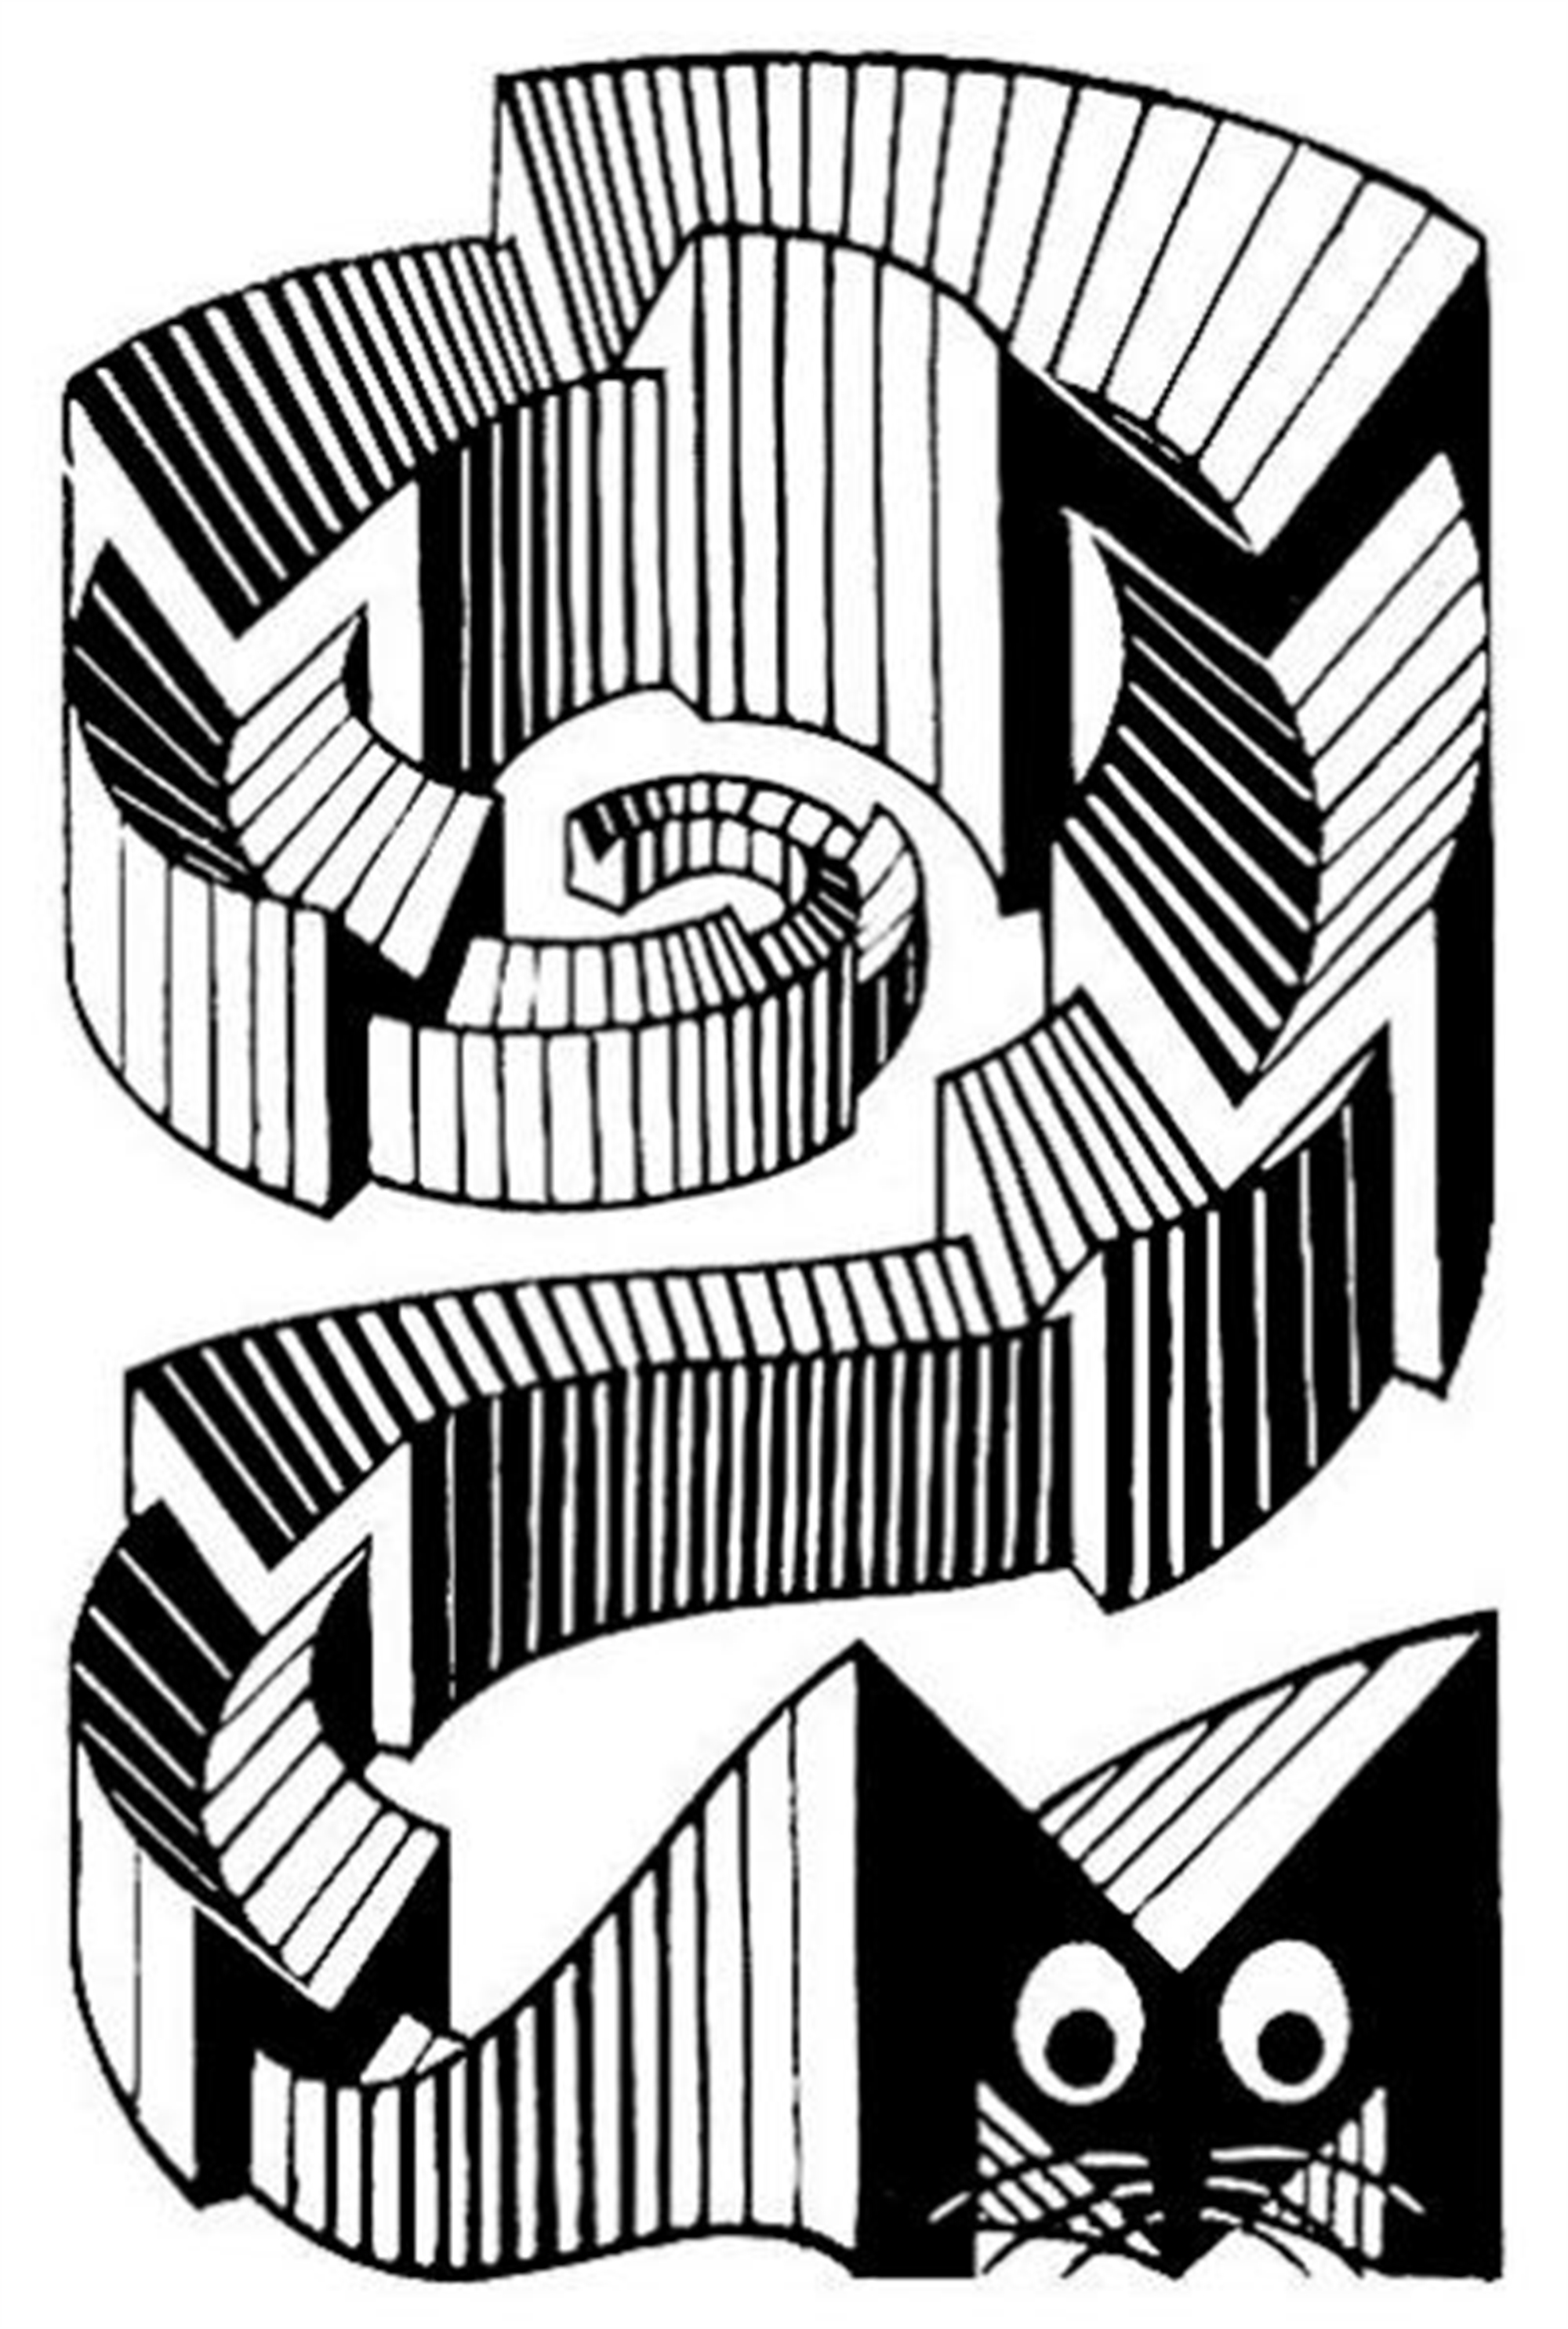 M is for Mouse by M.C. Escher